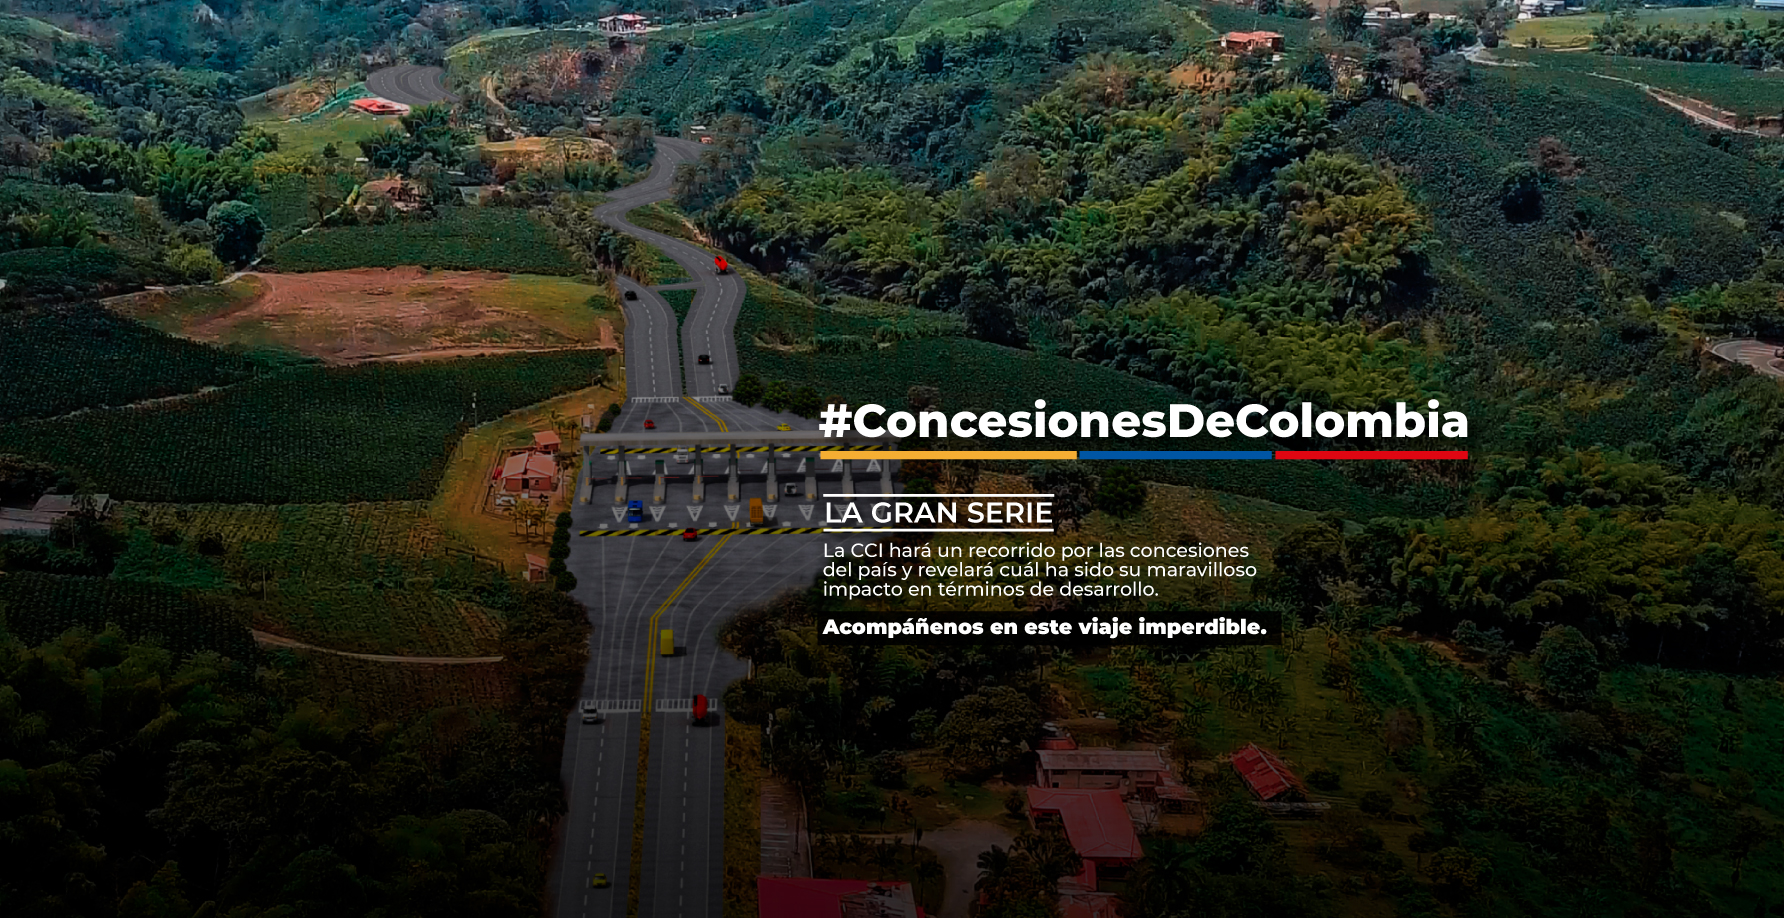 https://infraestructura.co/sites/default/files/revslider/image/WEB-CCI-CONCESIONESDECOLOMBIA.jpg